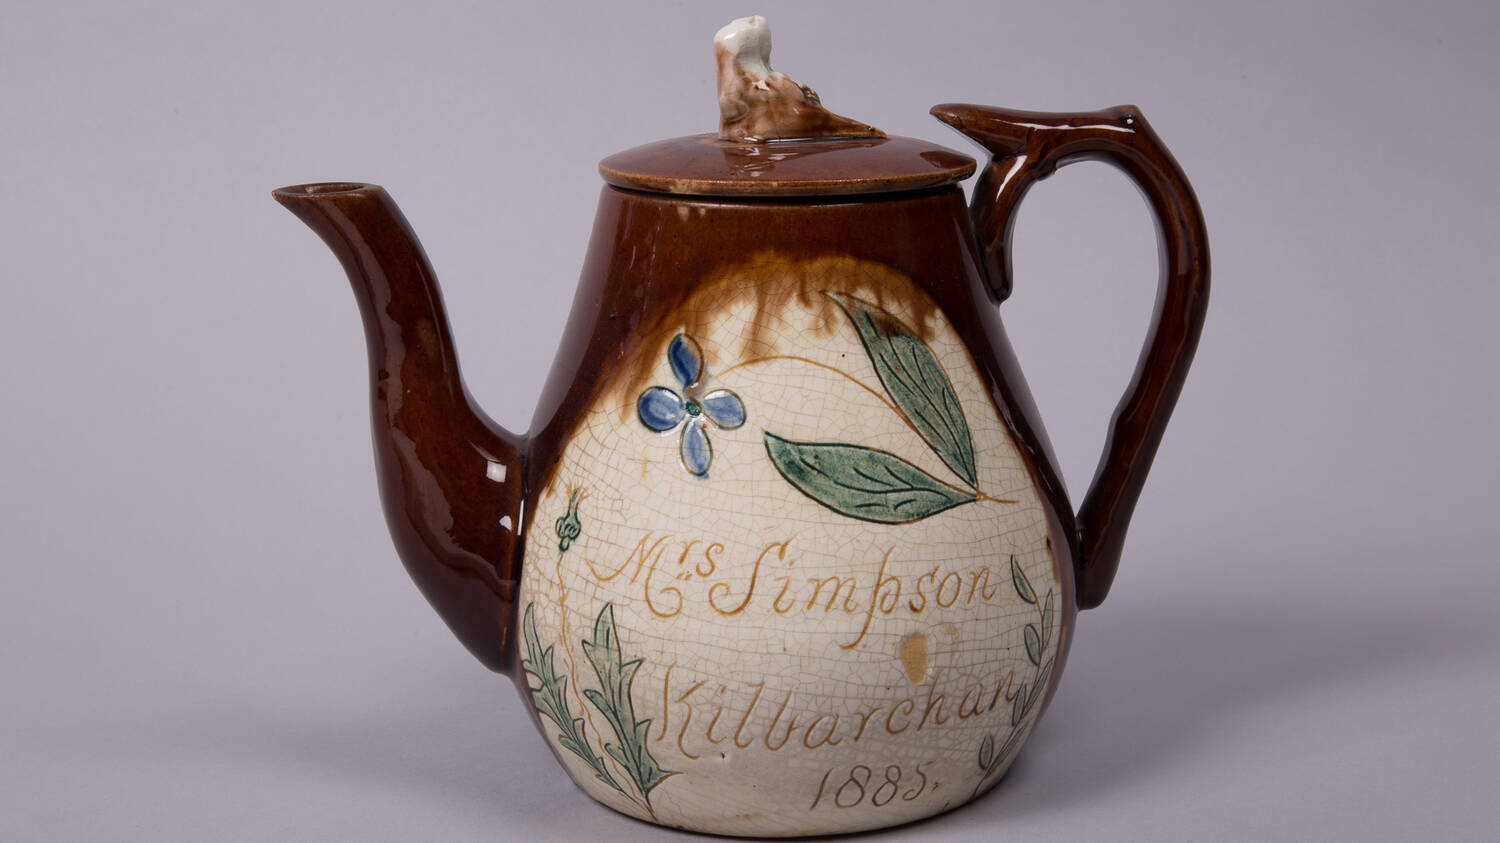 A varnished ceramic teapot with a brown spout and handle. The body has leaves and flowers painted on it, as well as the words: Mrs Simpson, Kilbarchan 1885.